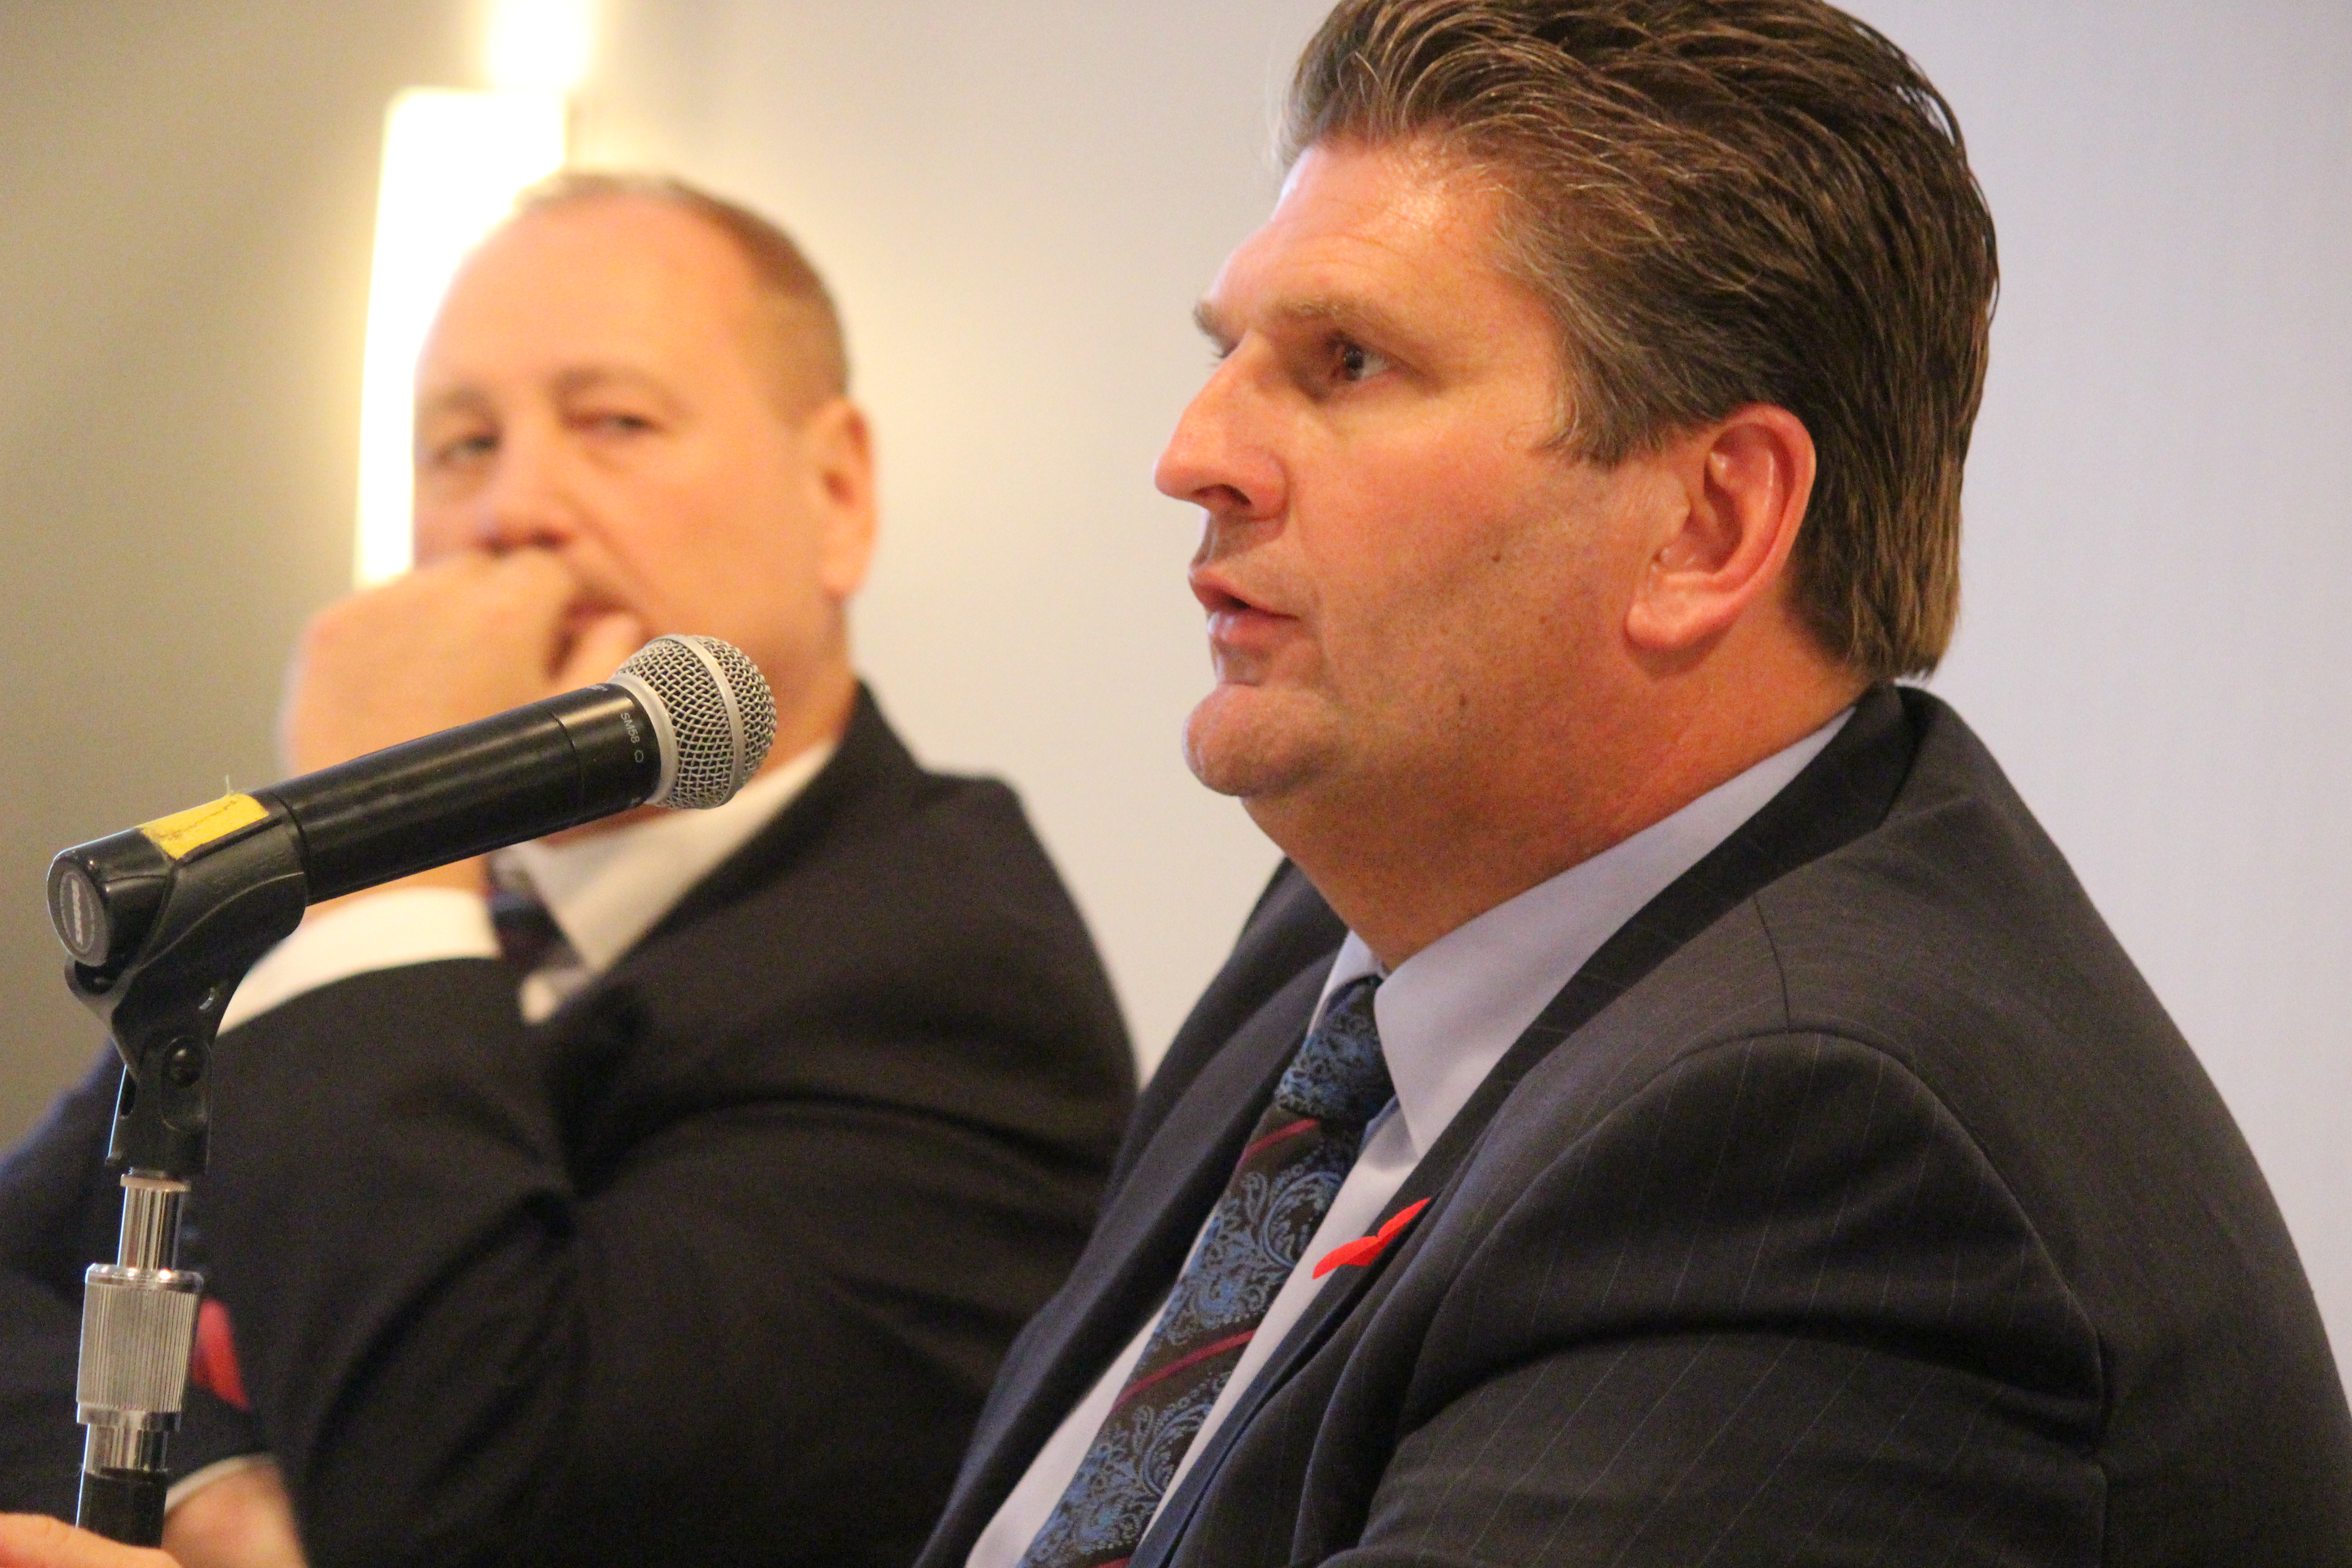 Windsor Regional Hospital CEO David Musyj at a townhall meeting at Windsor's Waterfront Hotel put on by the Downtown Windsor BIA on November 11, 2015. (Photo by Ricardo Veneza)